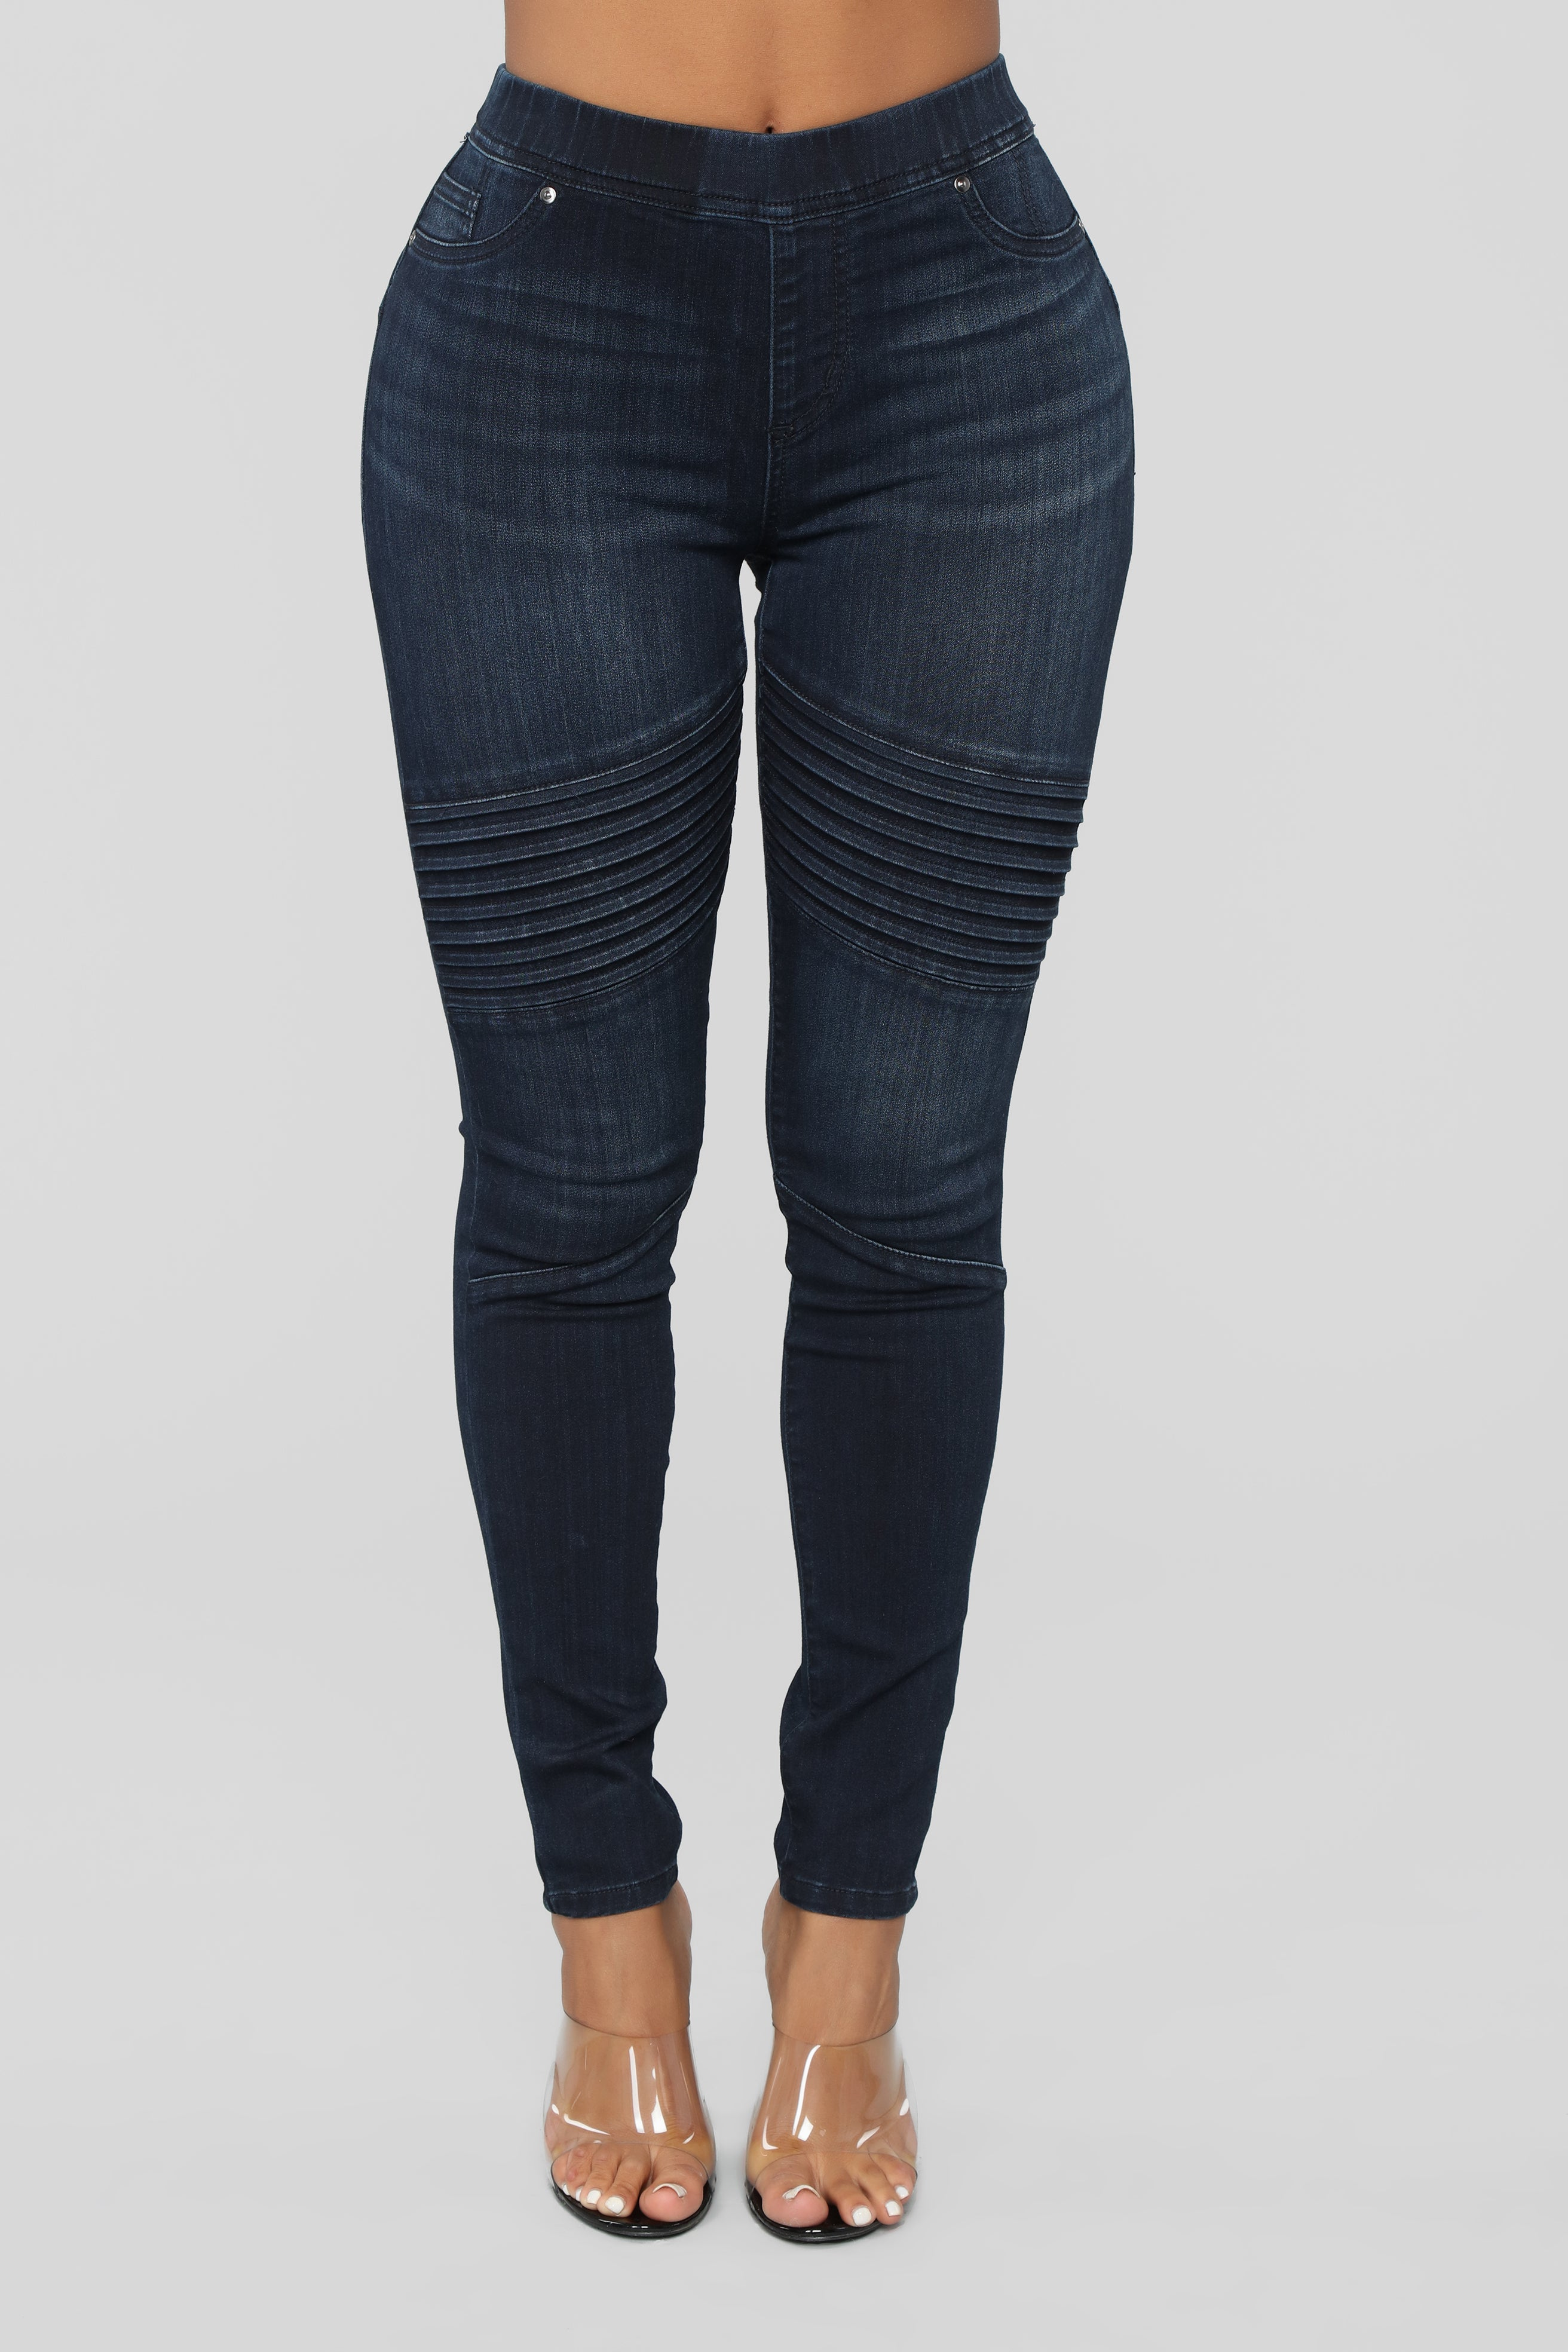 1934159fe7b Independent Woman High Rise Moto Jeans - Dark Denim